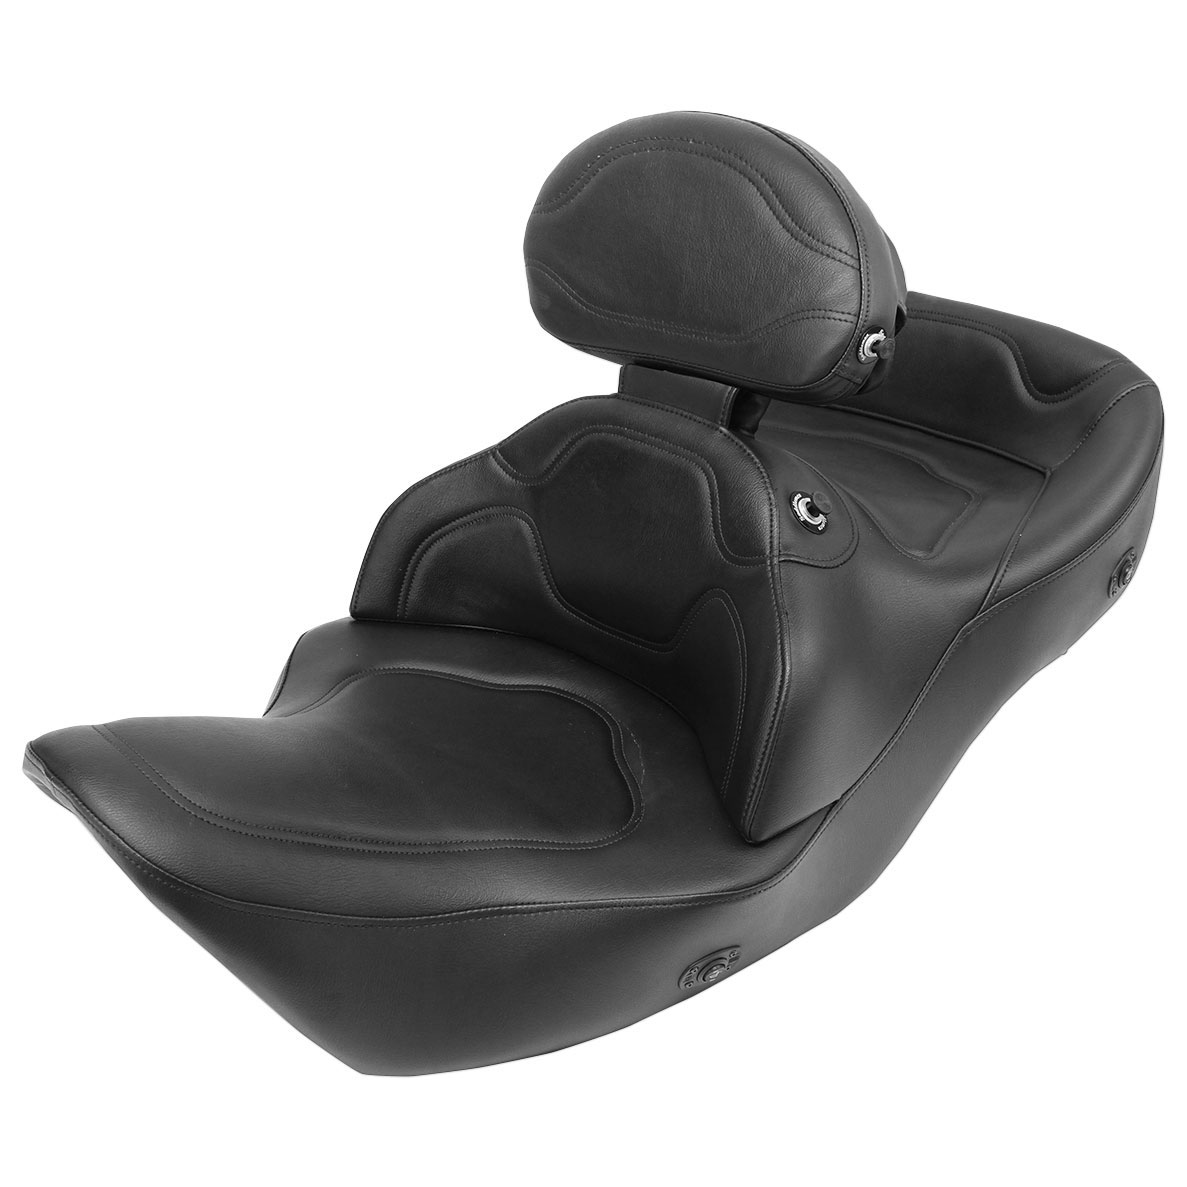 road sofa seat goldwing corduroy sectional with chaise saddlemen heated driver backrest and trunk pad